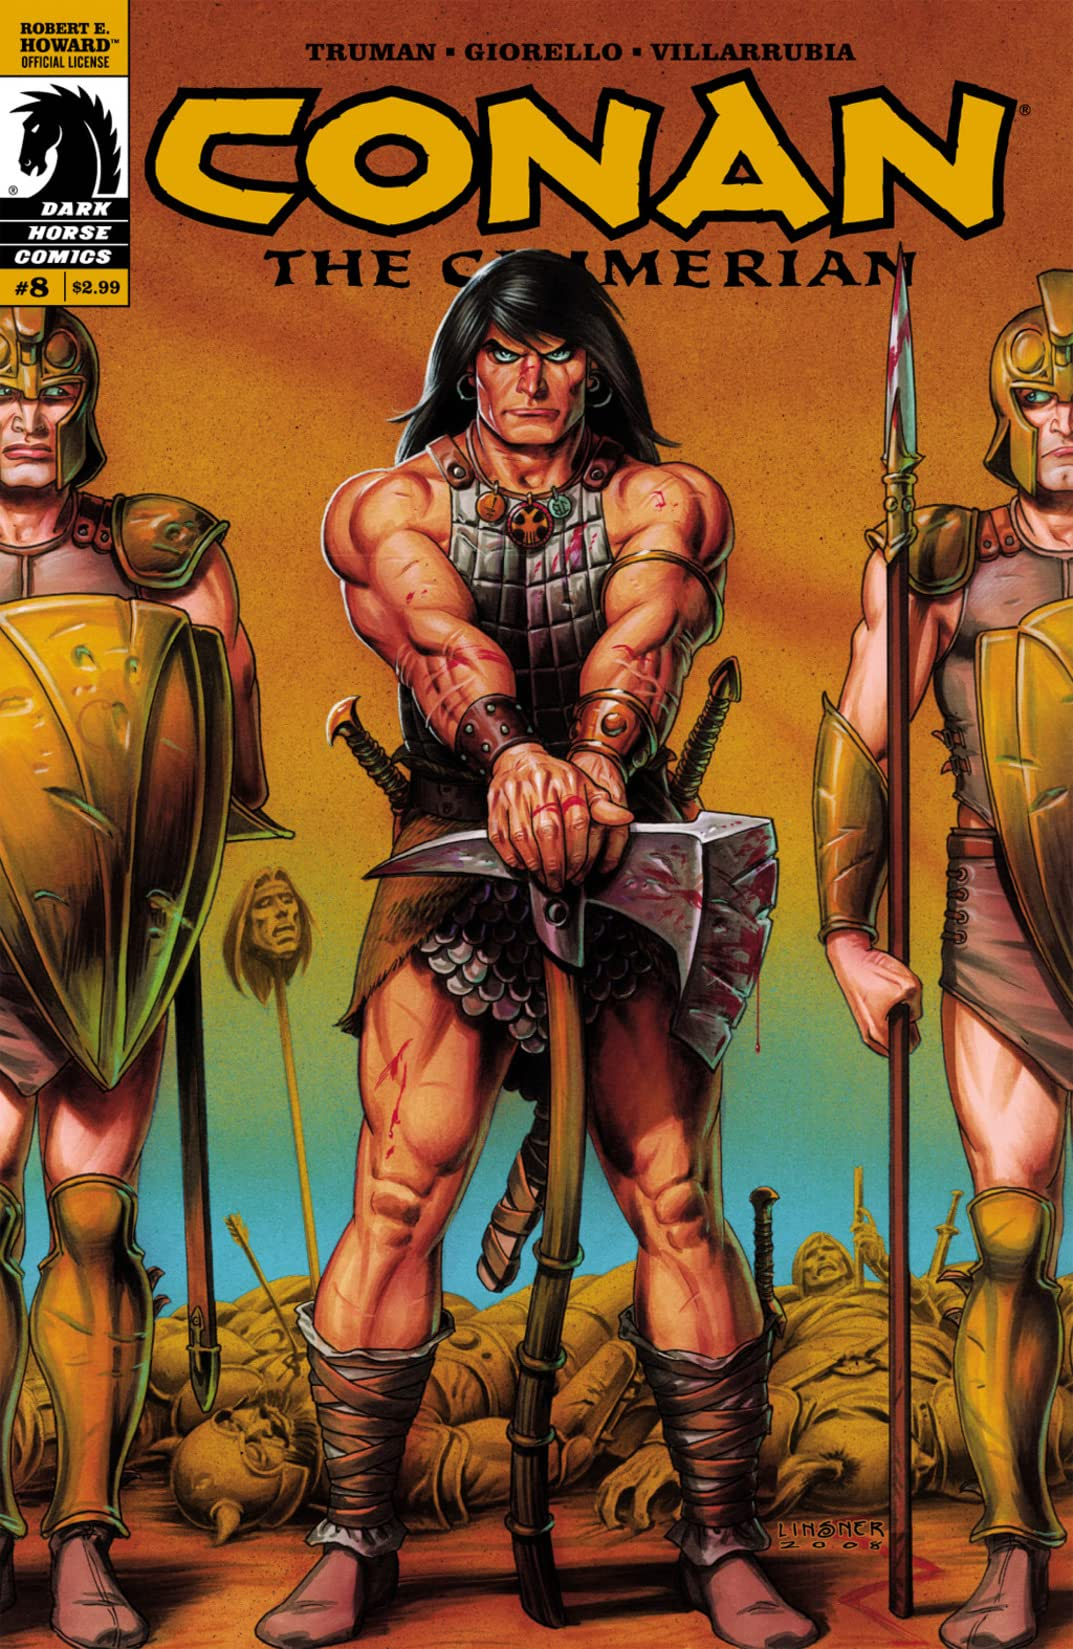 Conan the Cimmerian #8